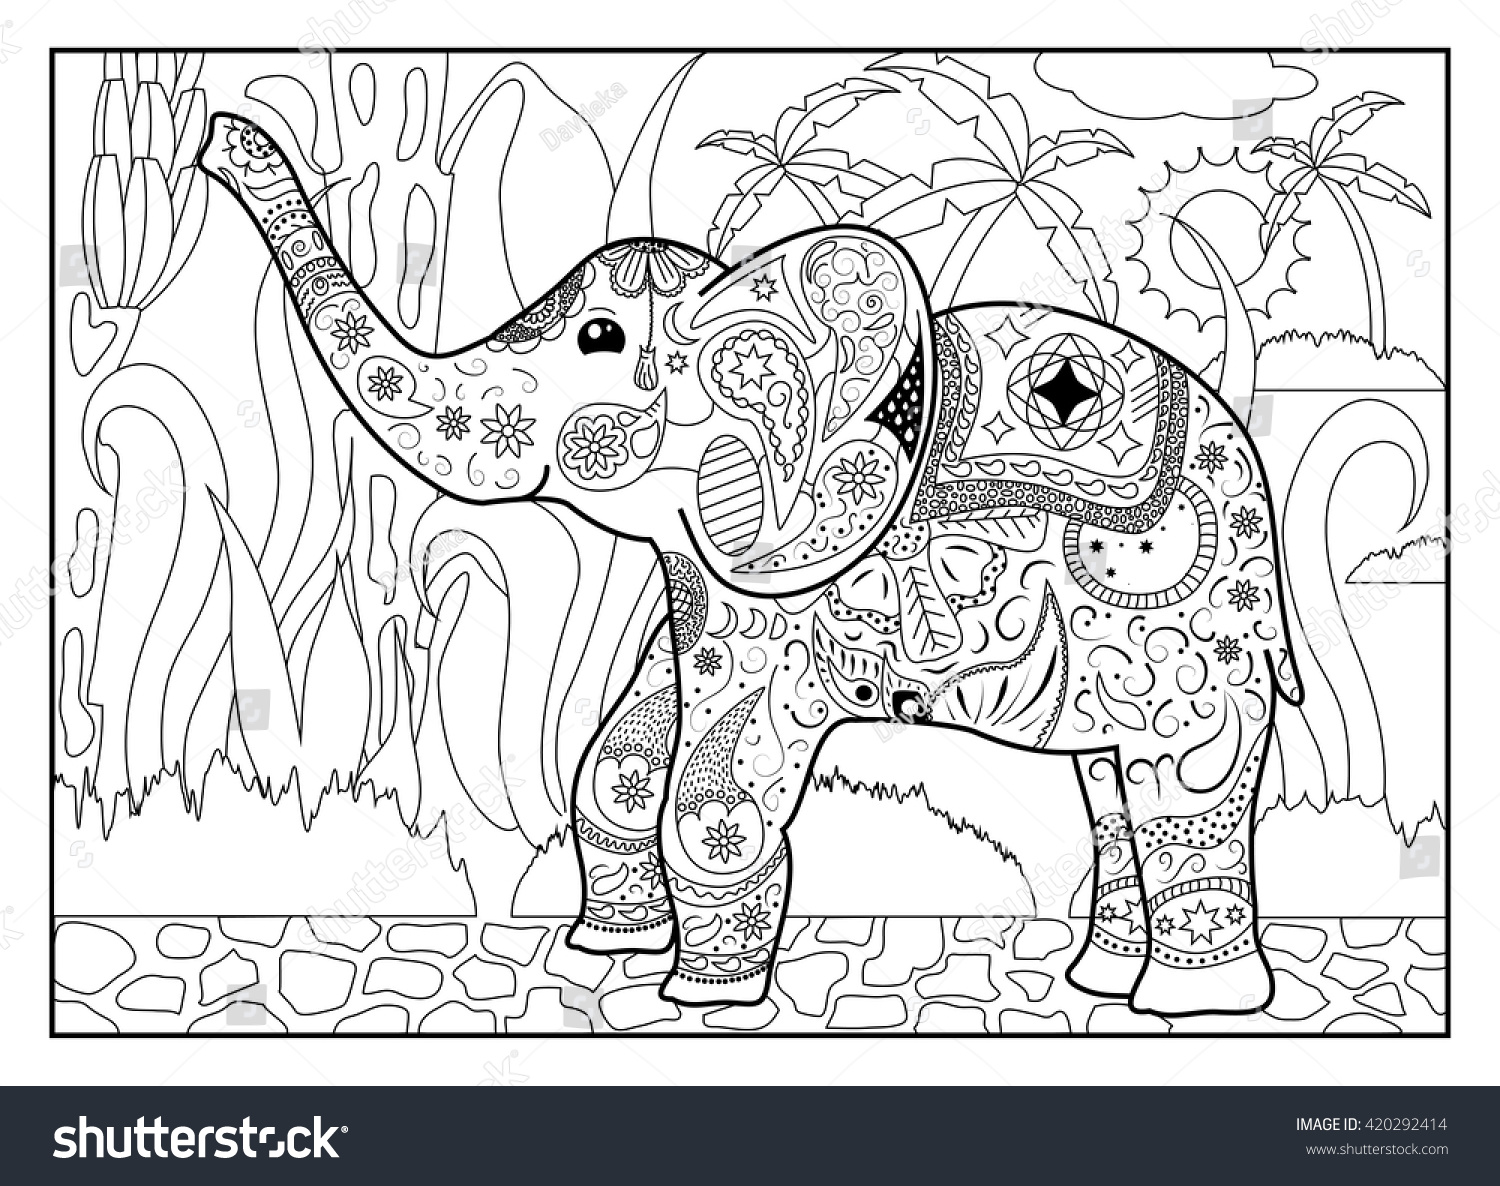 elephant jungle coloring page mandala style stock vector 420292414